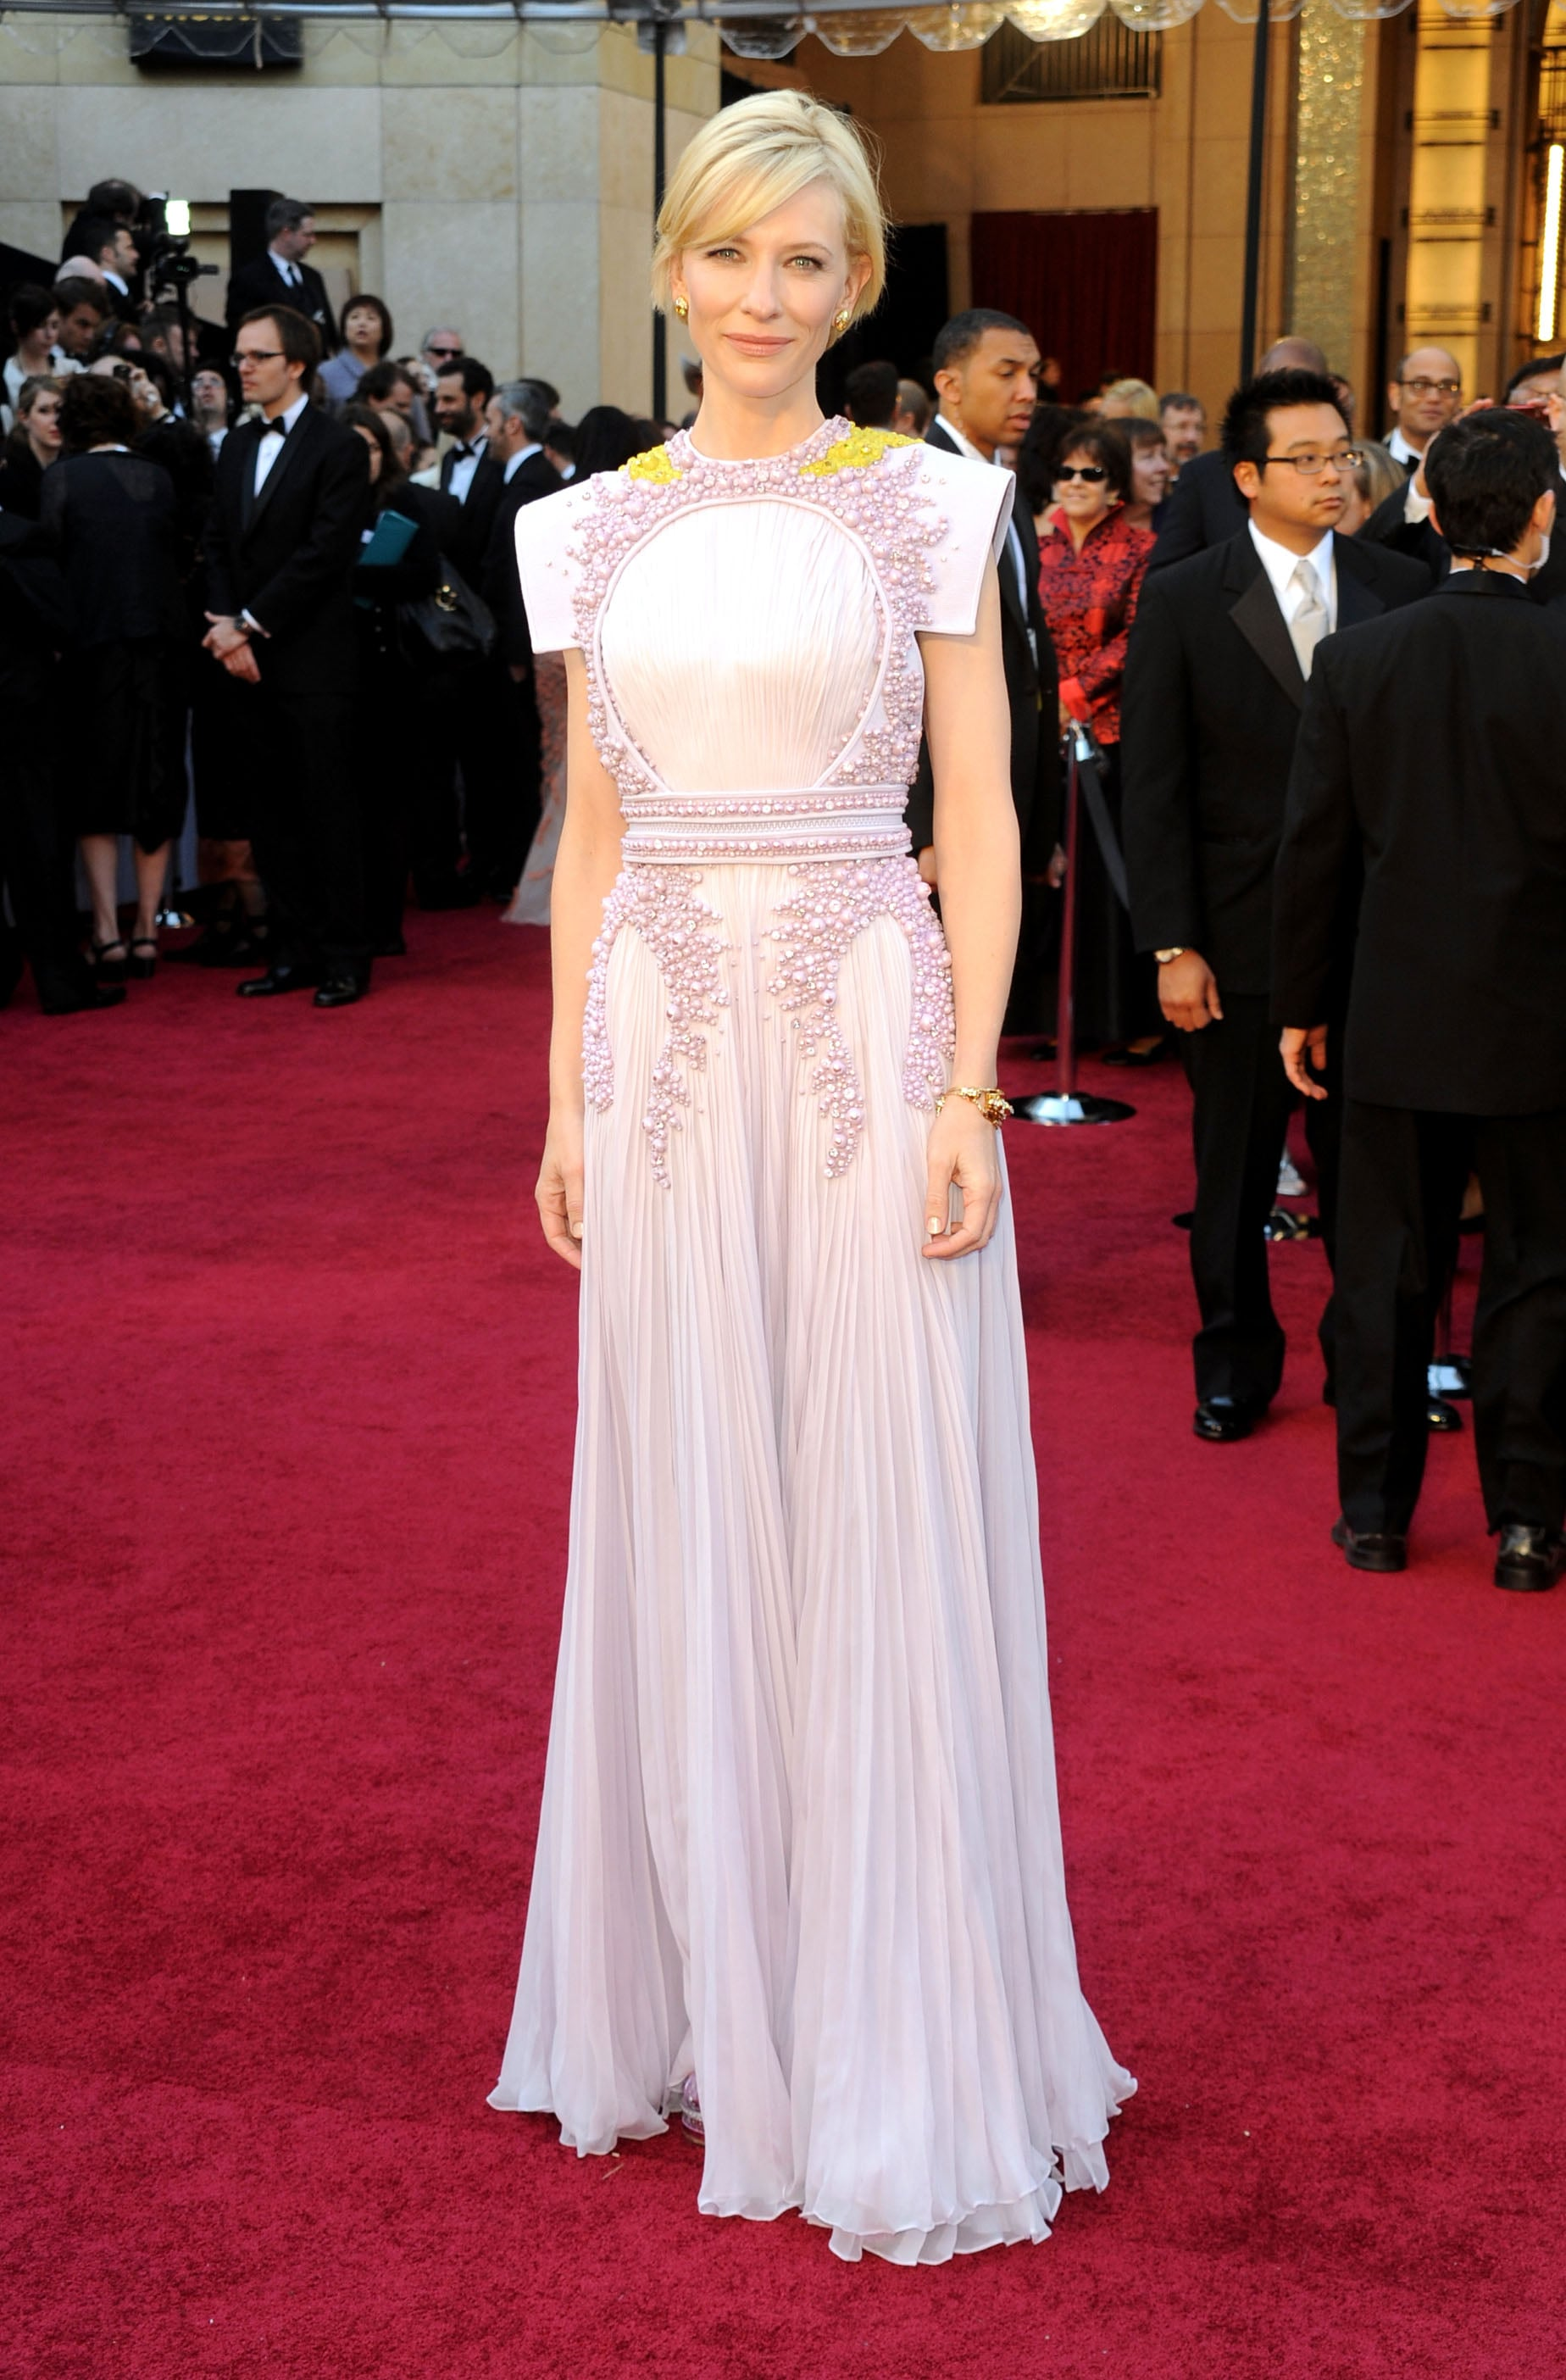 19_cate_blanchett_at_the_academy_awards_2011_givenchy_couture.jpg